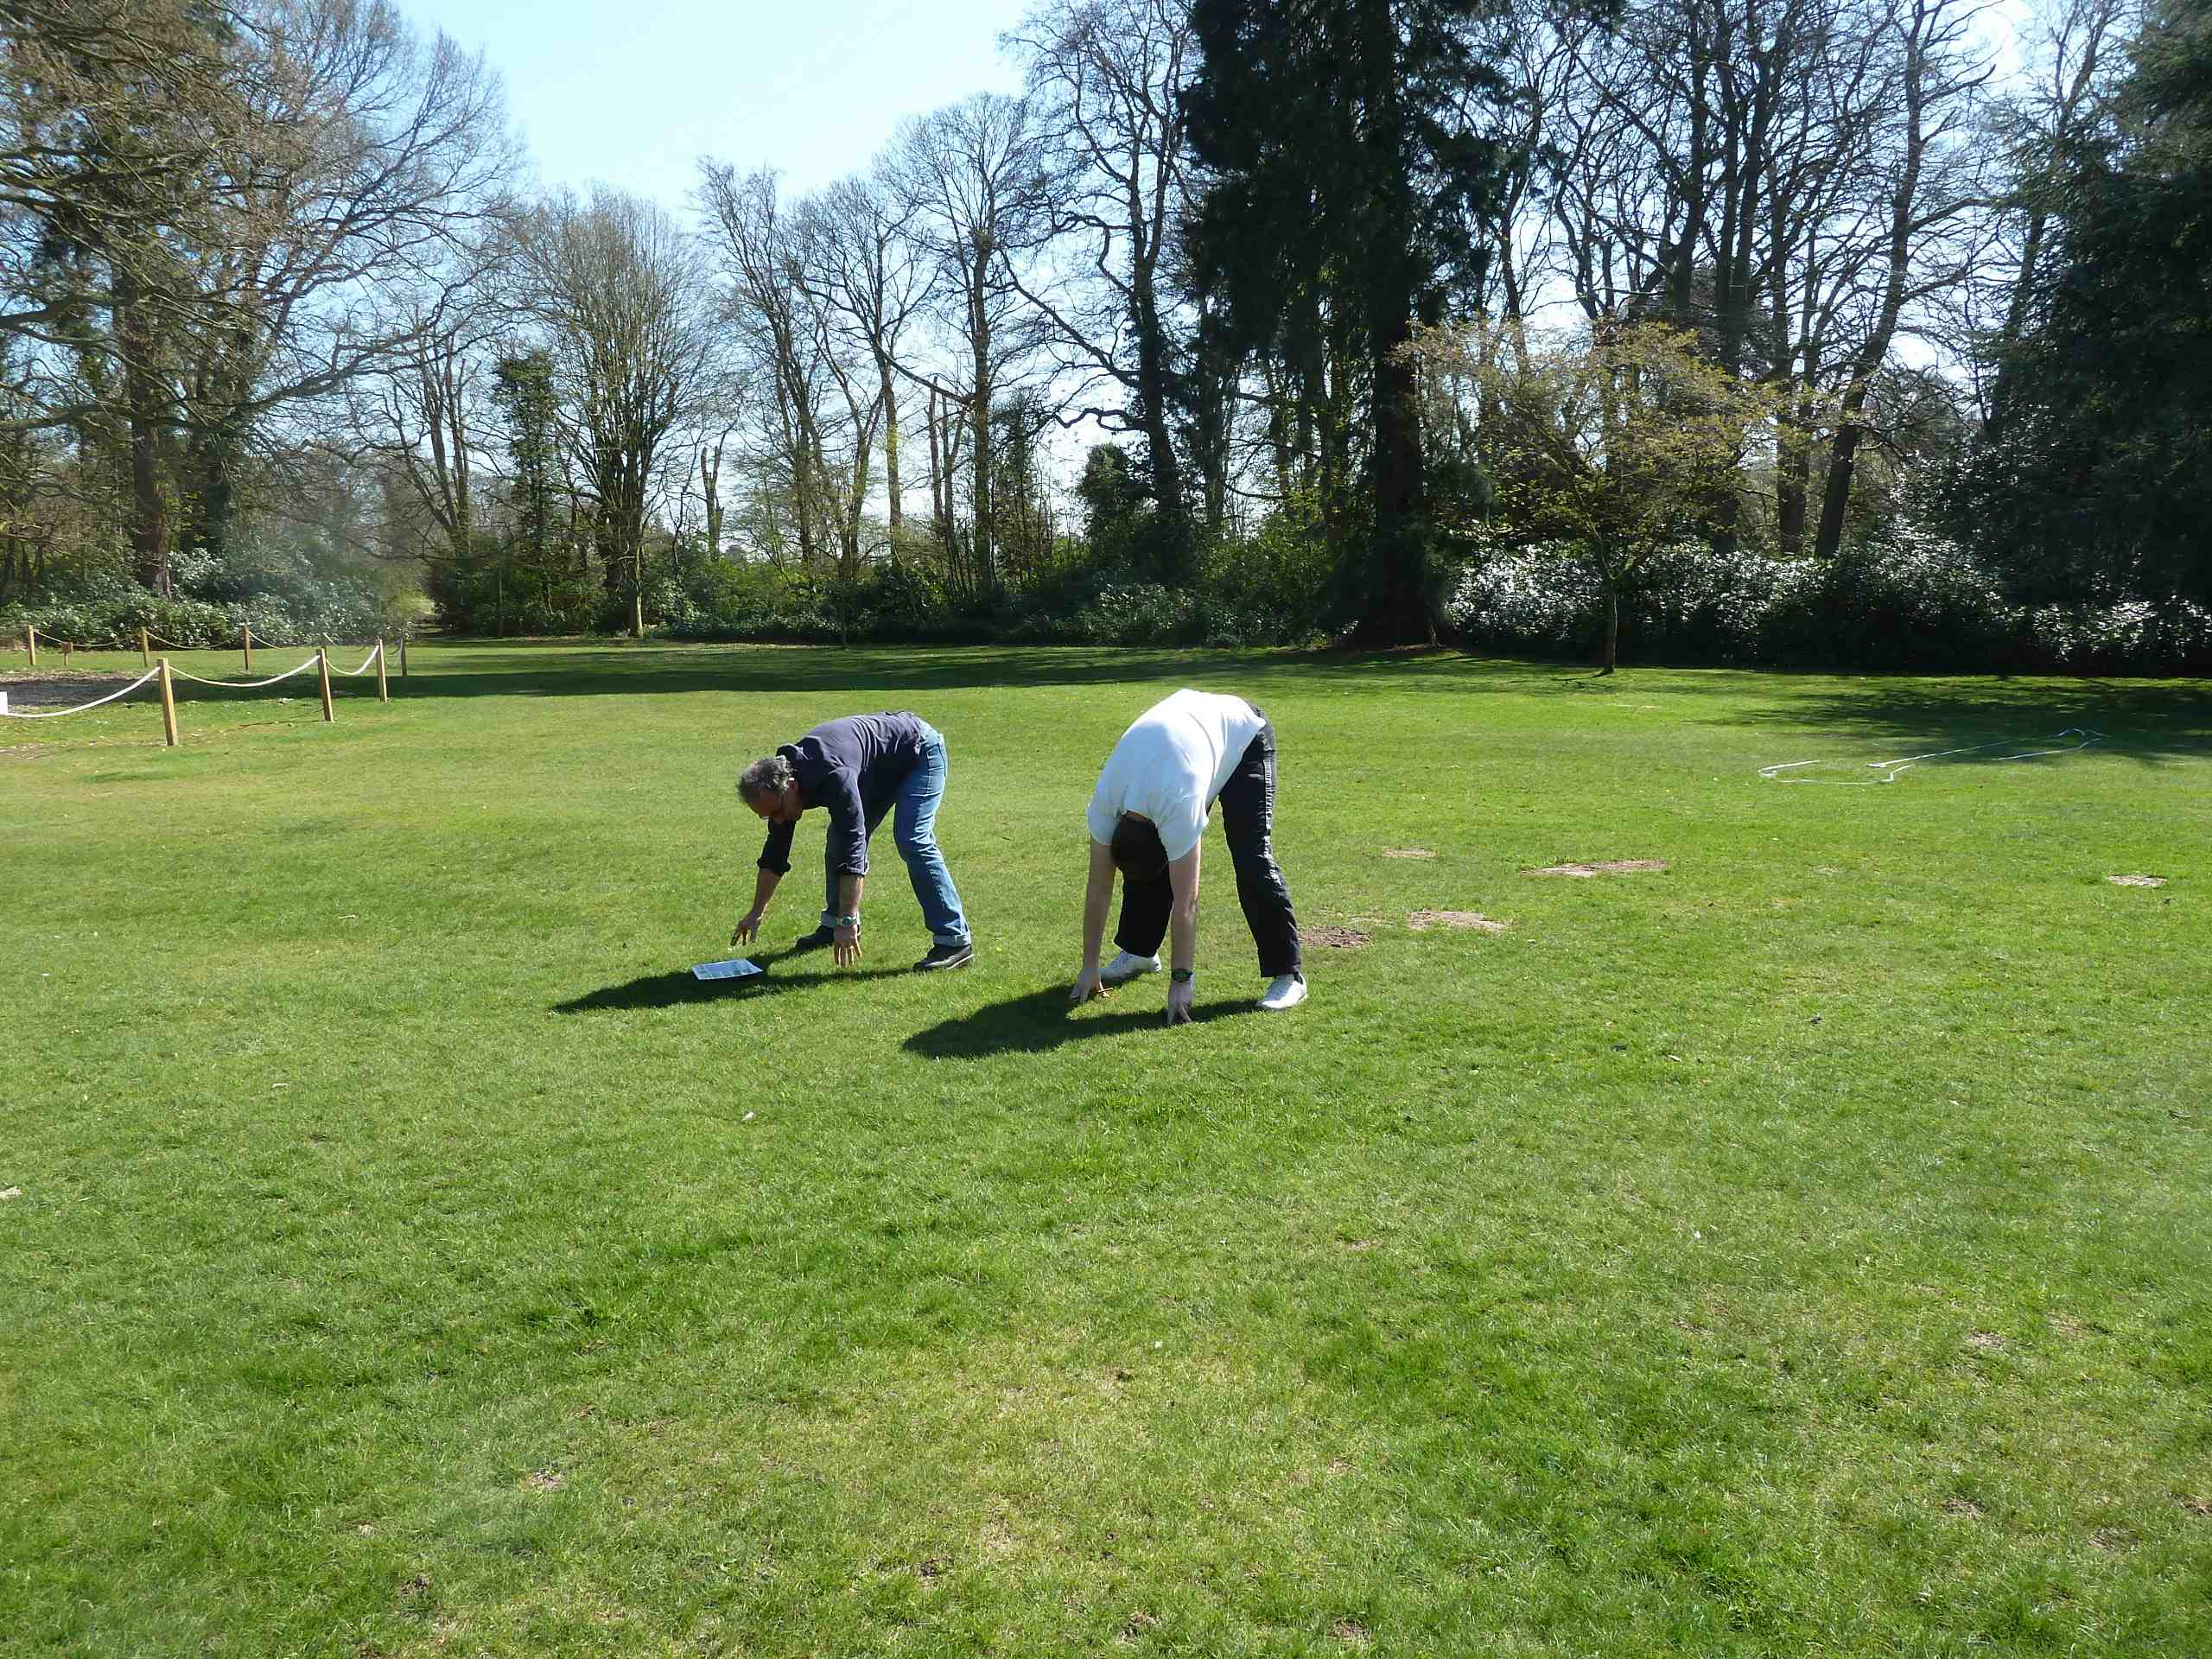 yoga or assessing tree height (maths)